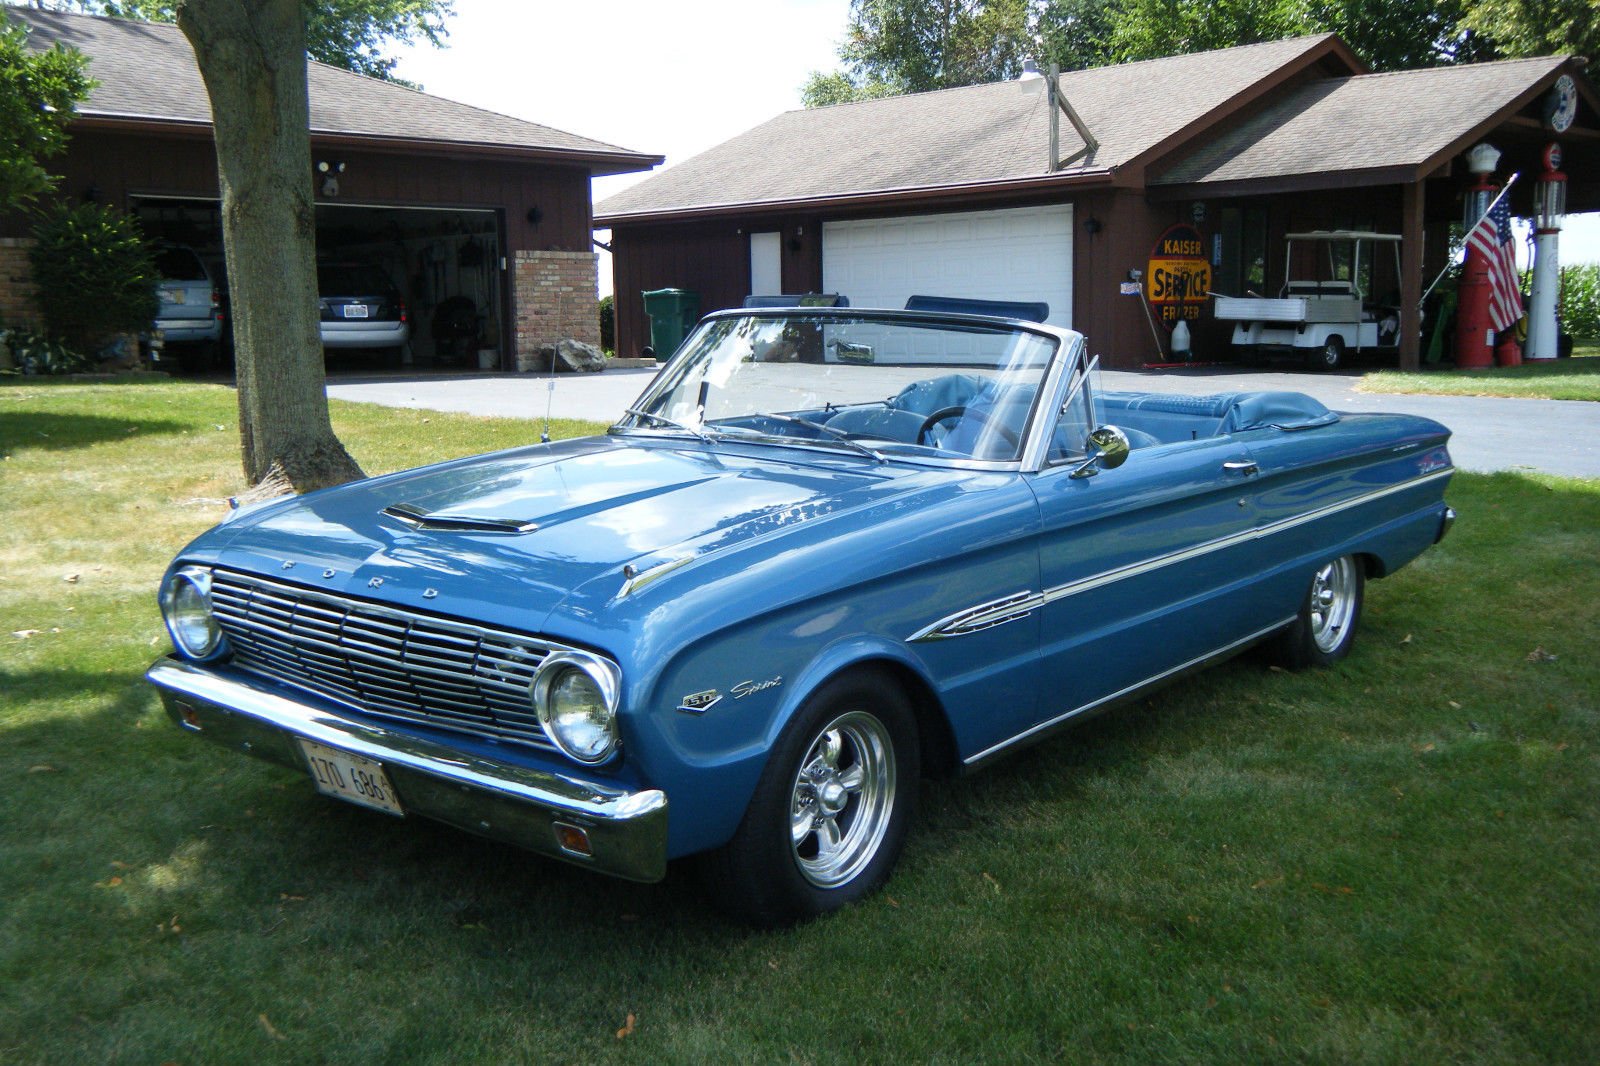 Topless Cruiser 1963 Ford Falcon